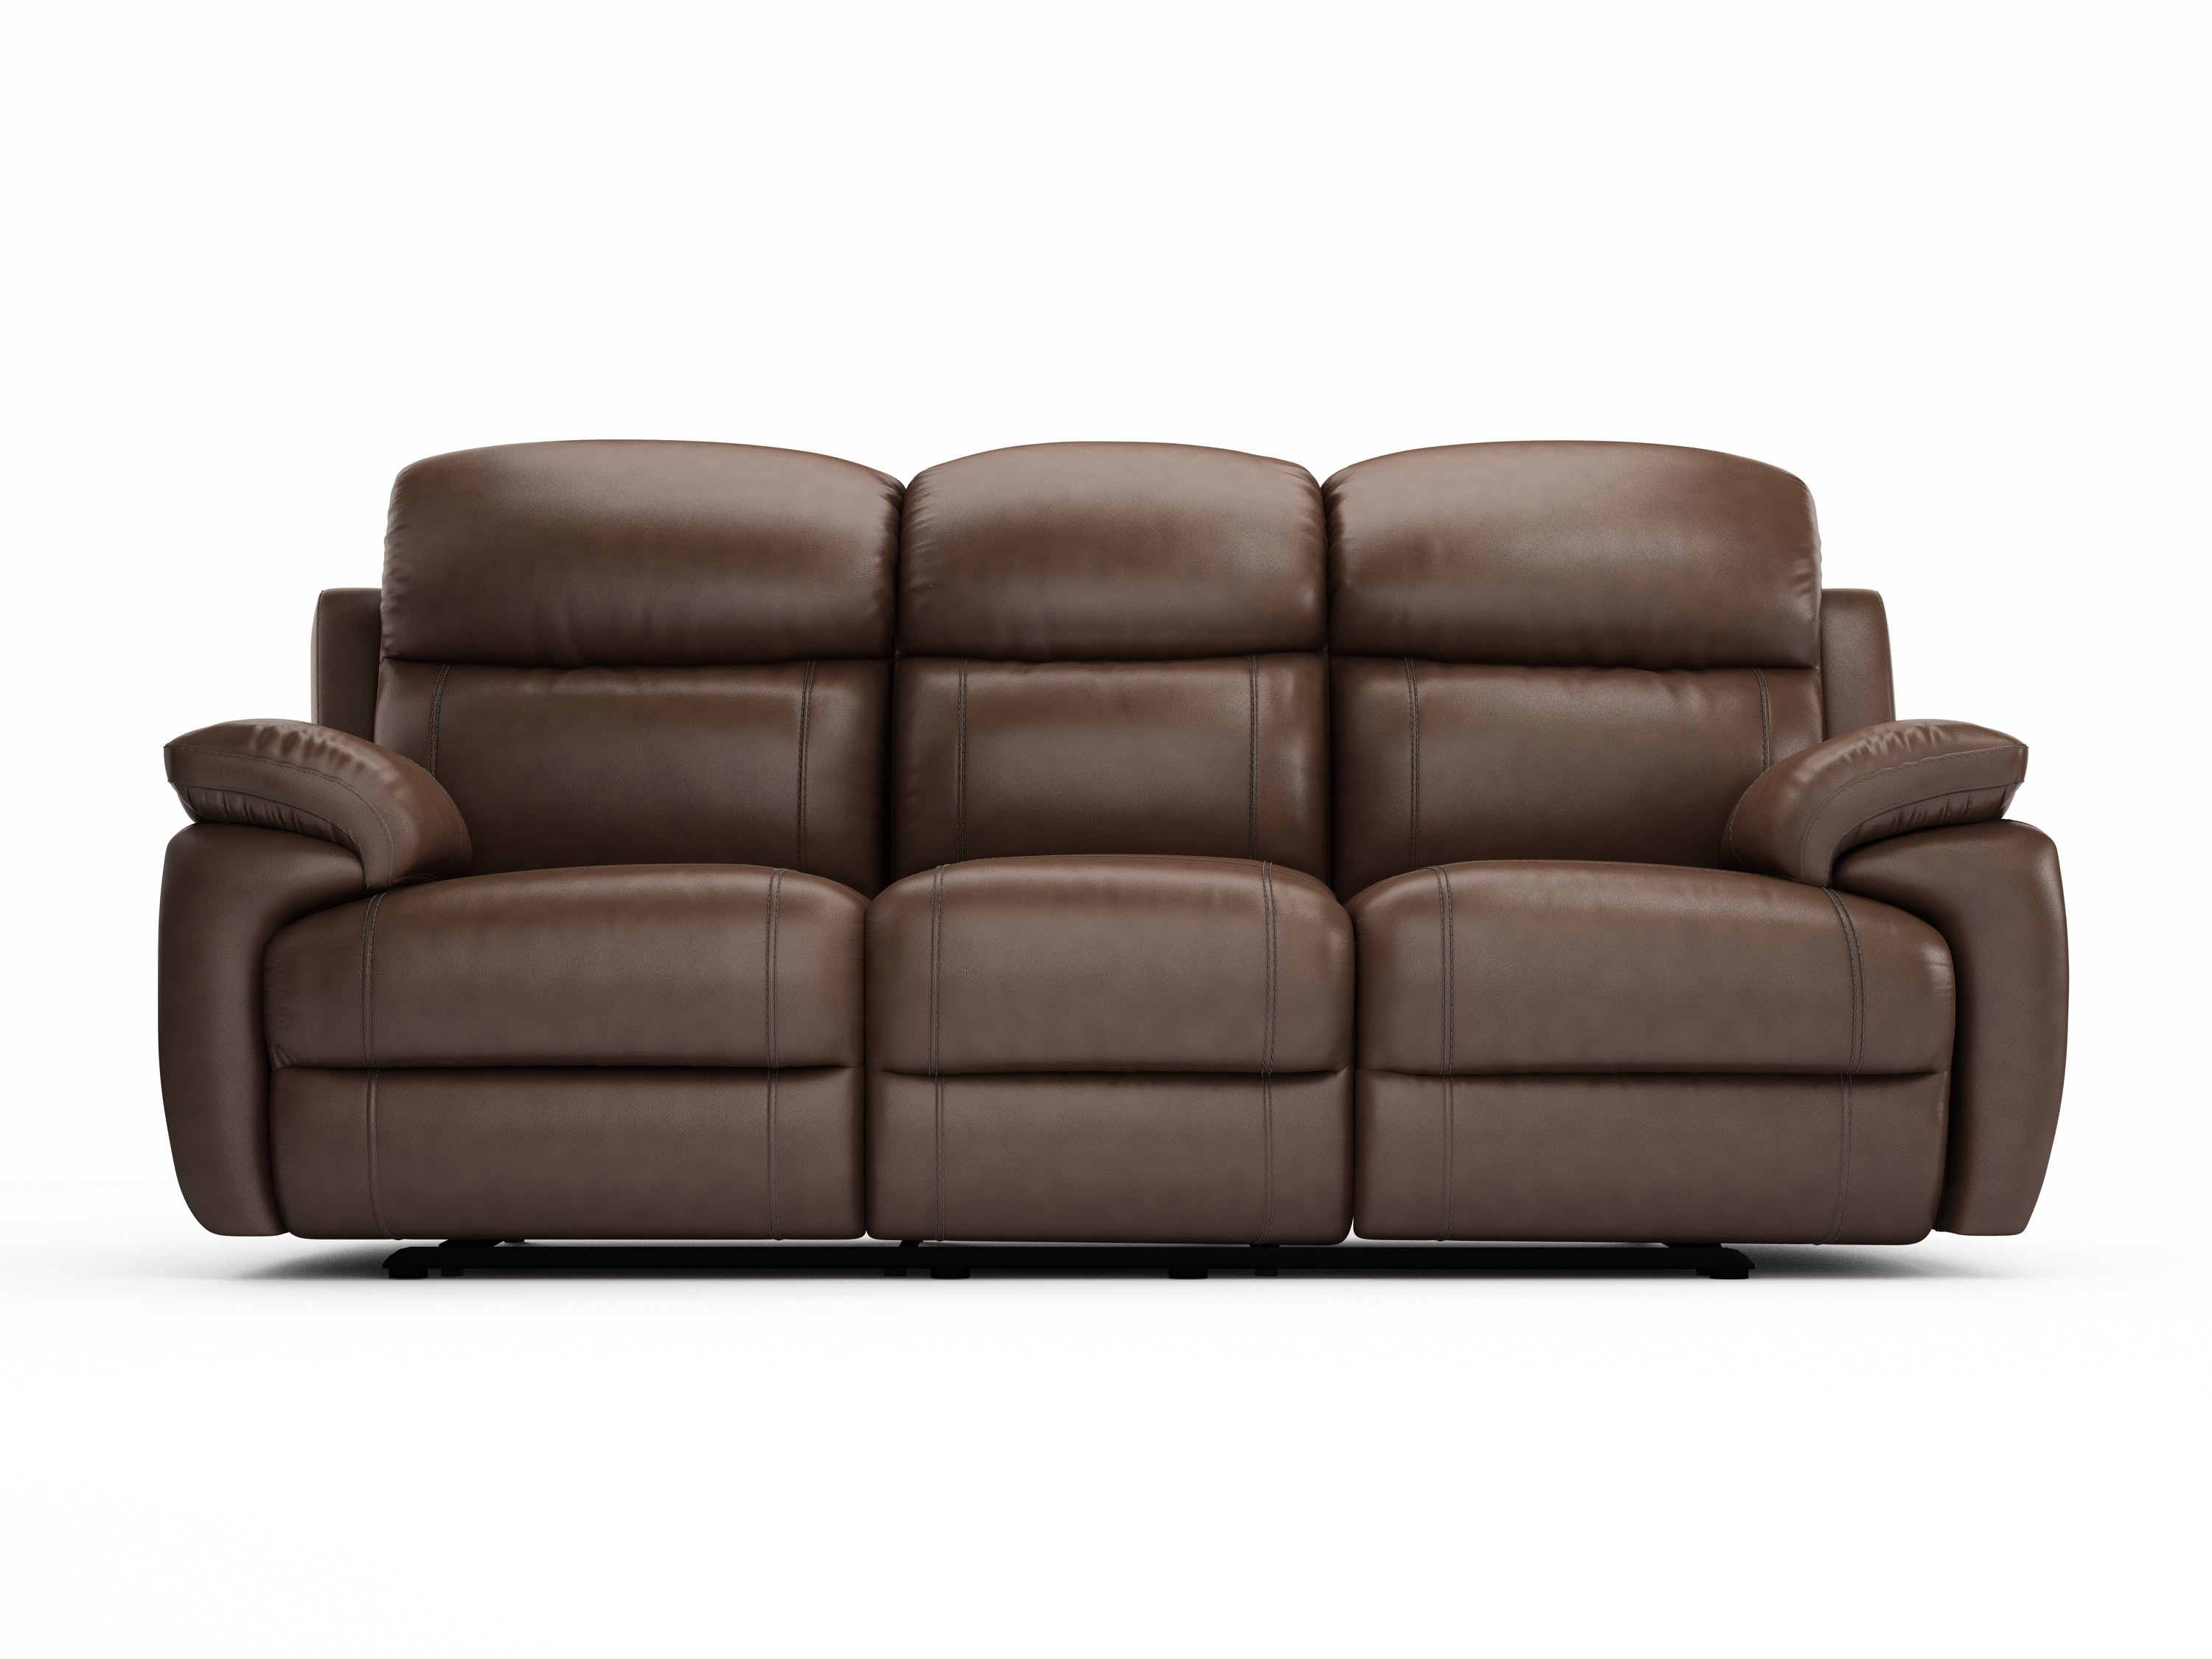 Maya 3-Seater Recliner Sofa | Colour options